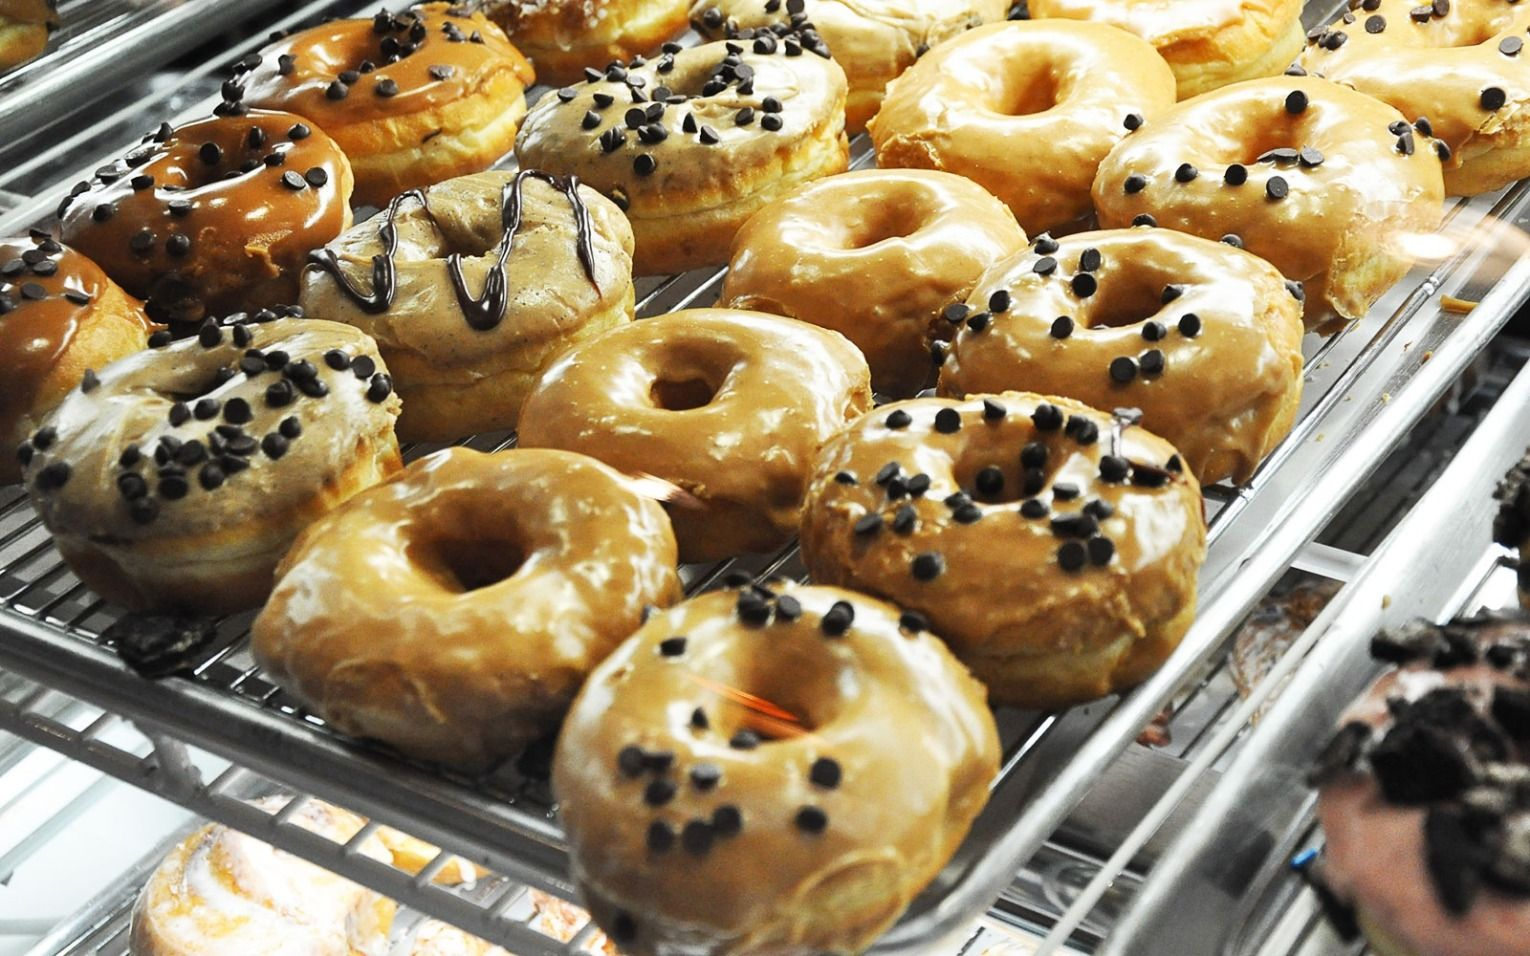 Sugar Shack Donuts in Richmond, Virginia: Hand-rolled, hand-cut donuts are made in small batches each day in every Sugar Shack in Virginia.